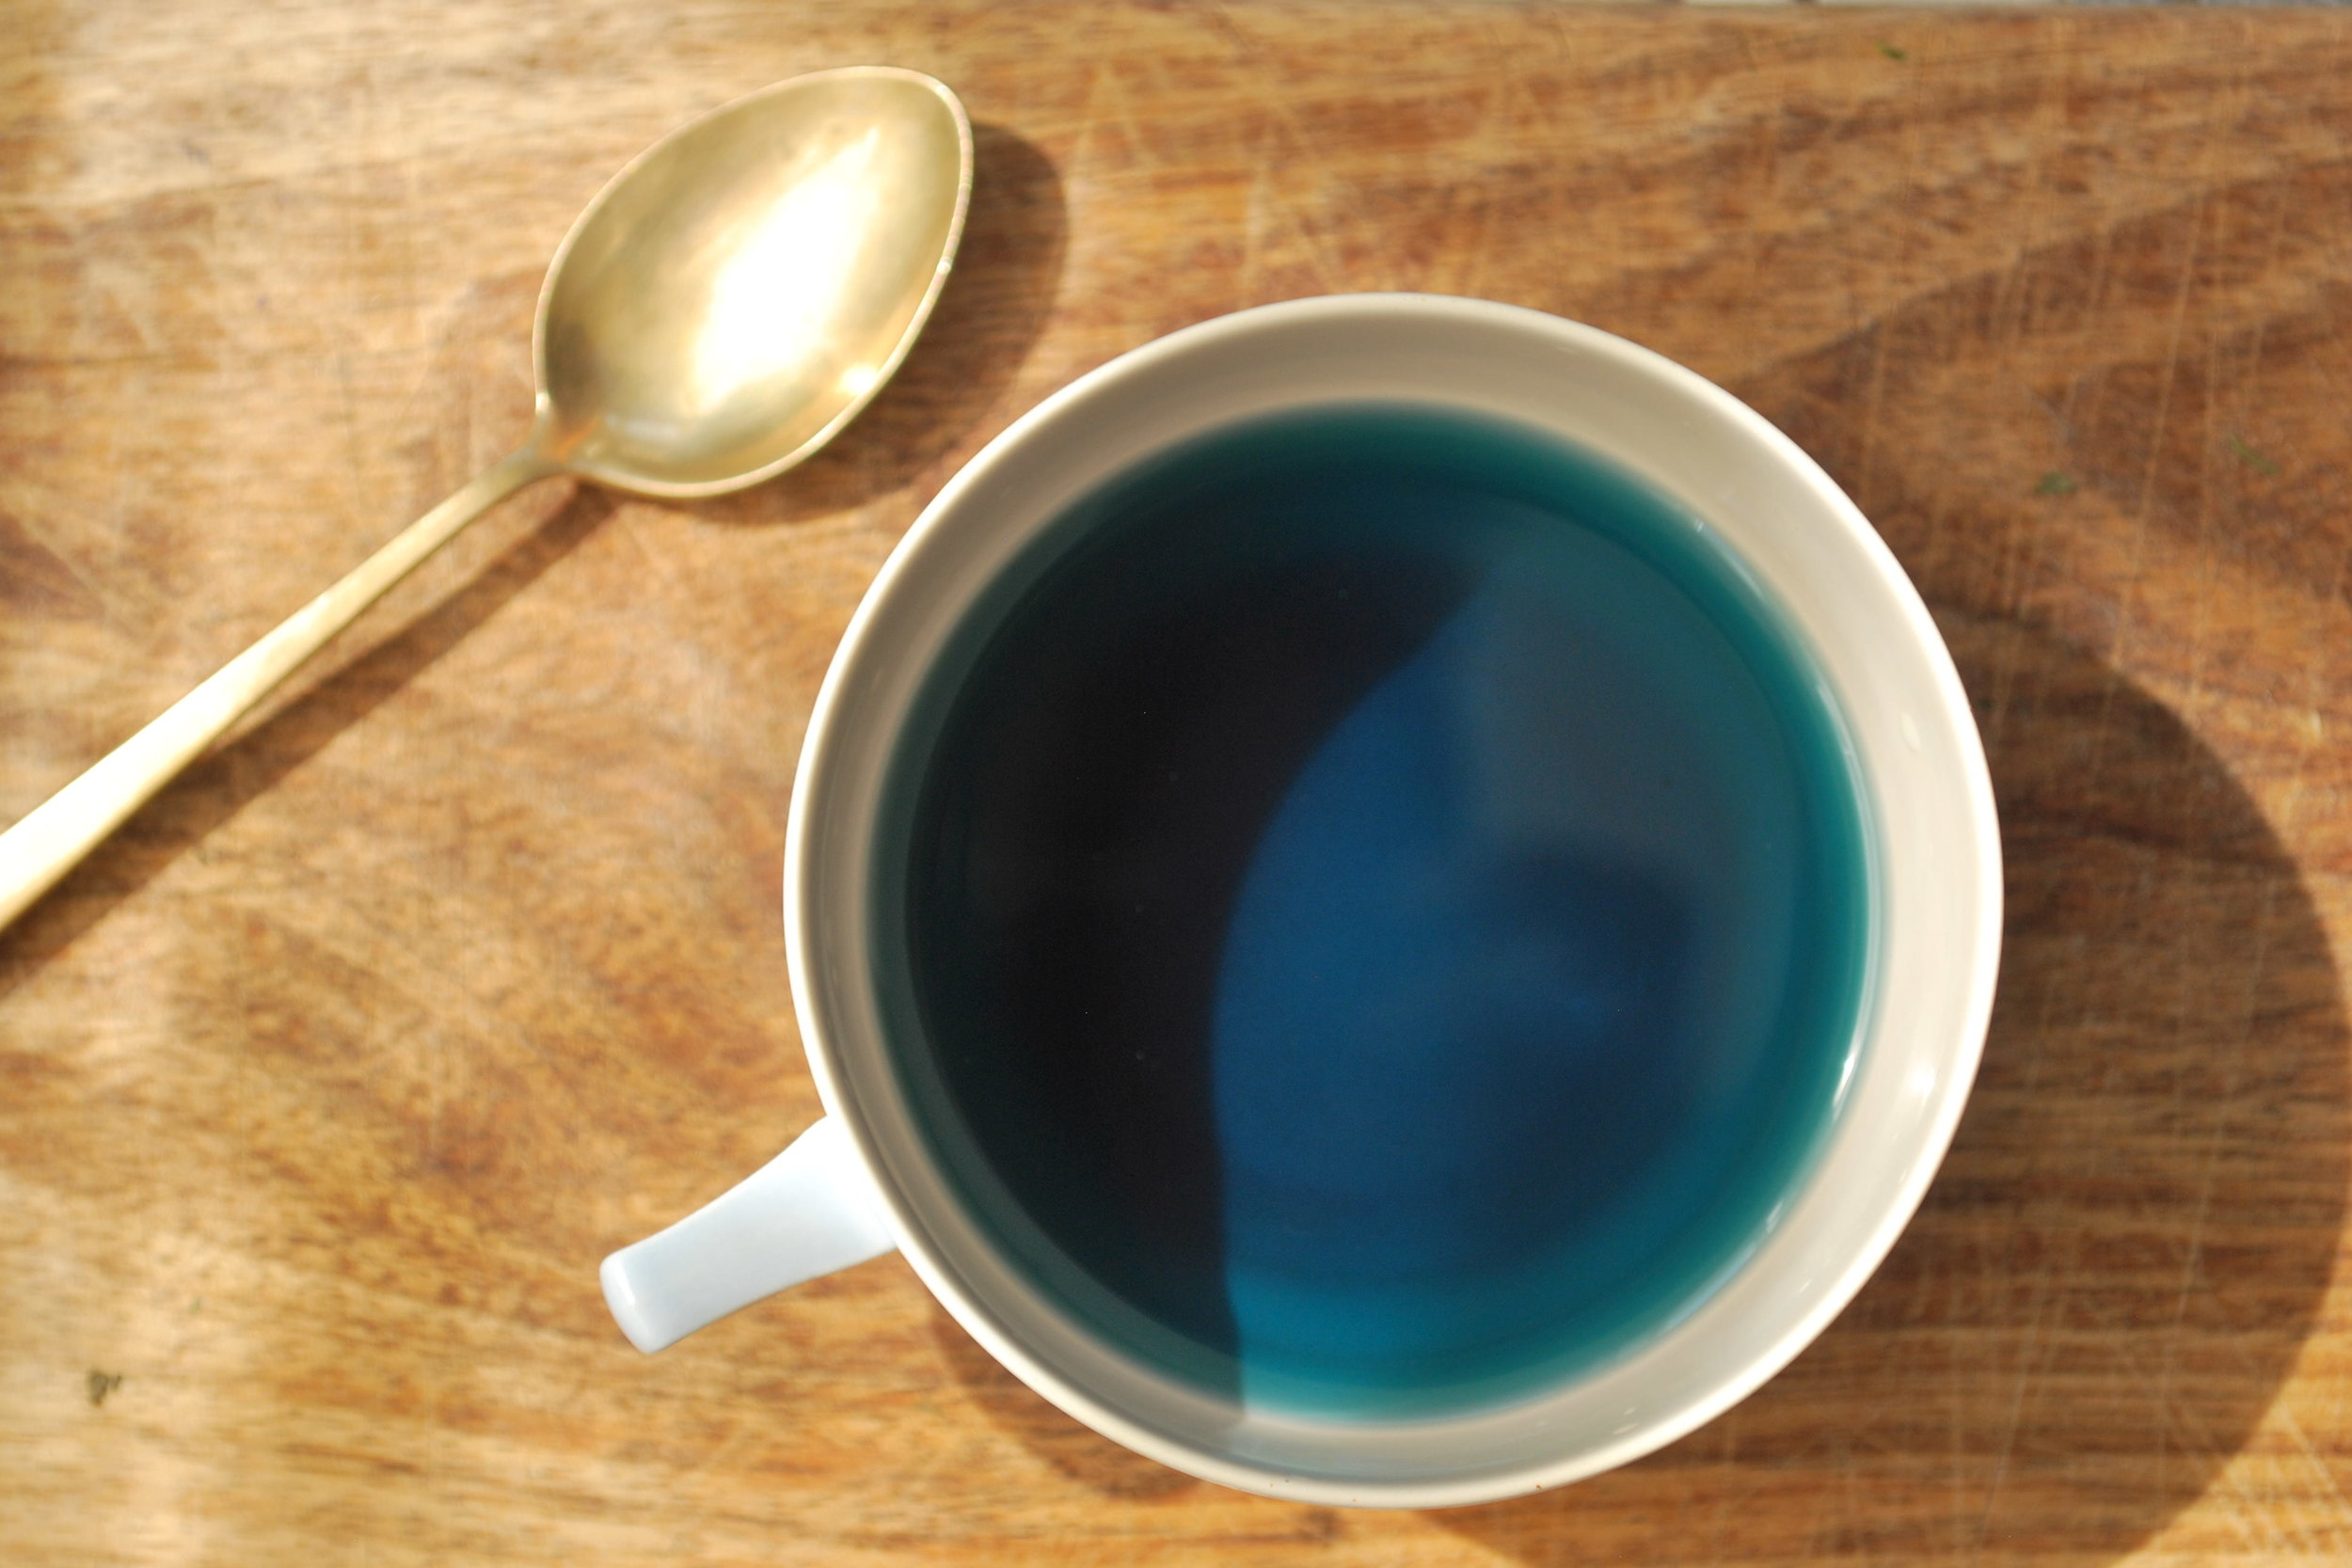 Blue Velvet - This tisane produces a beautiful, rich, blue infusion! Antioxidant rich, soothing, refreshing and super-immune enhancing.